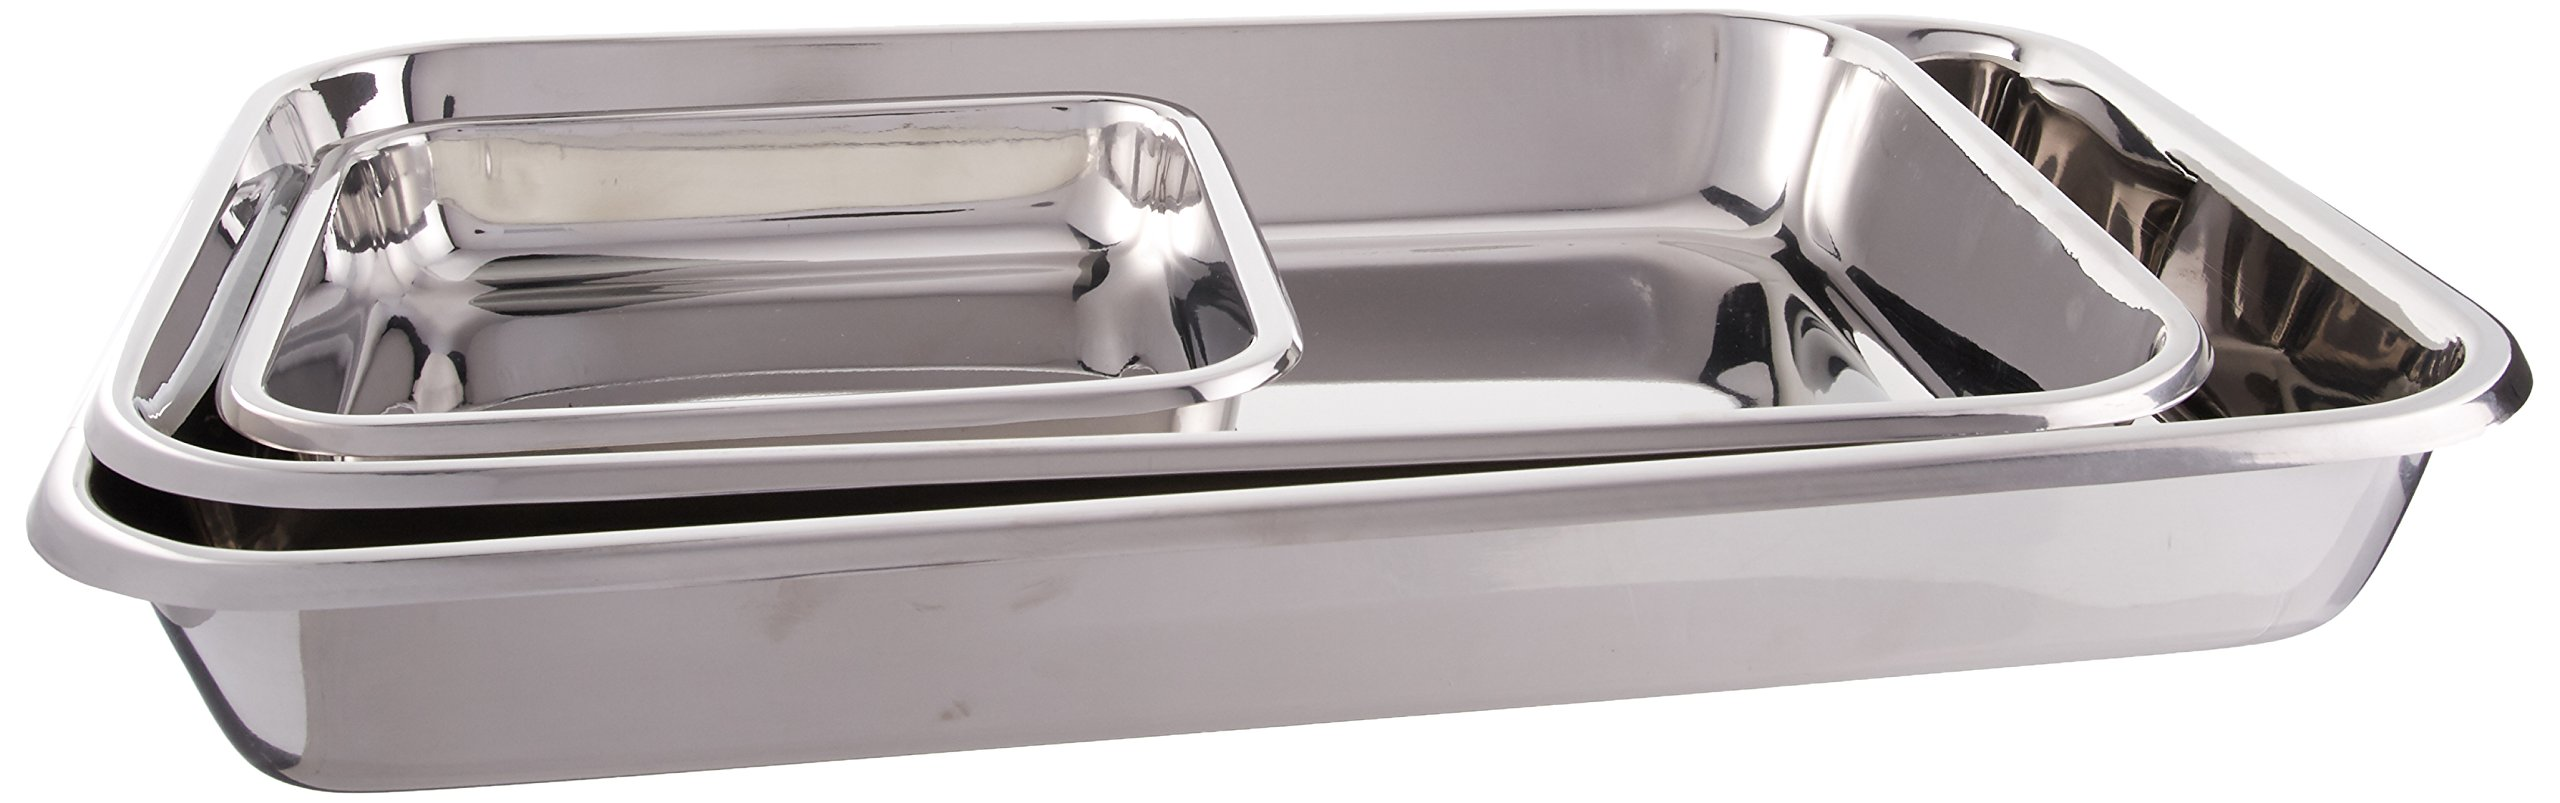 Hammer Stahl 3 Piece Rectangular Bake Pan Set, Stainless Steel